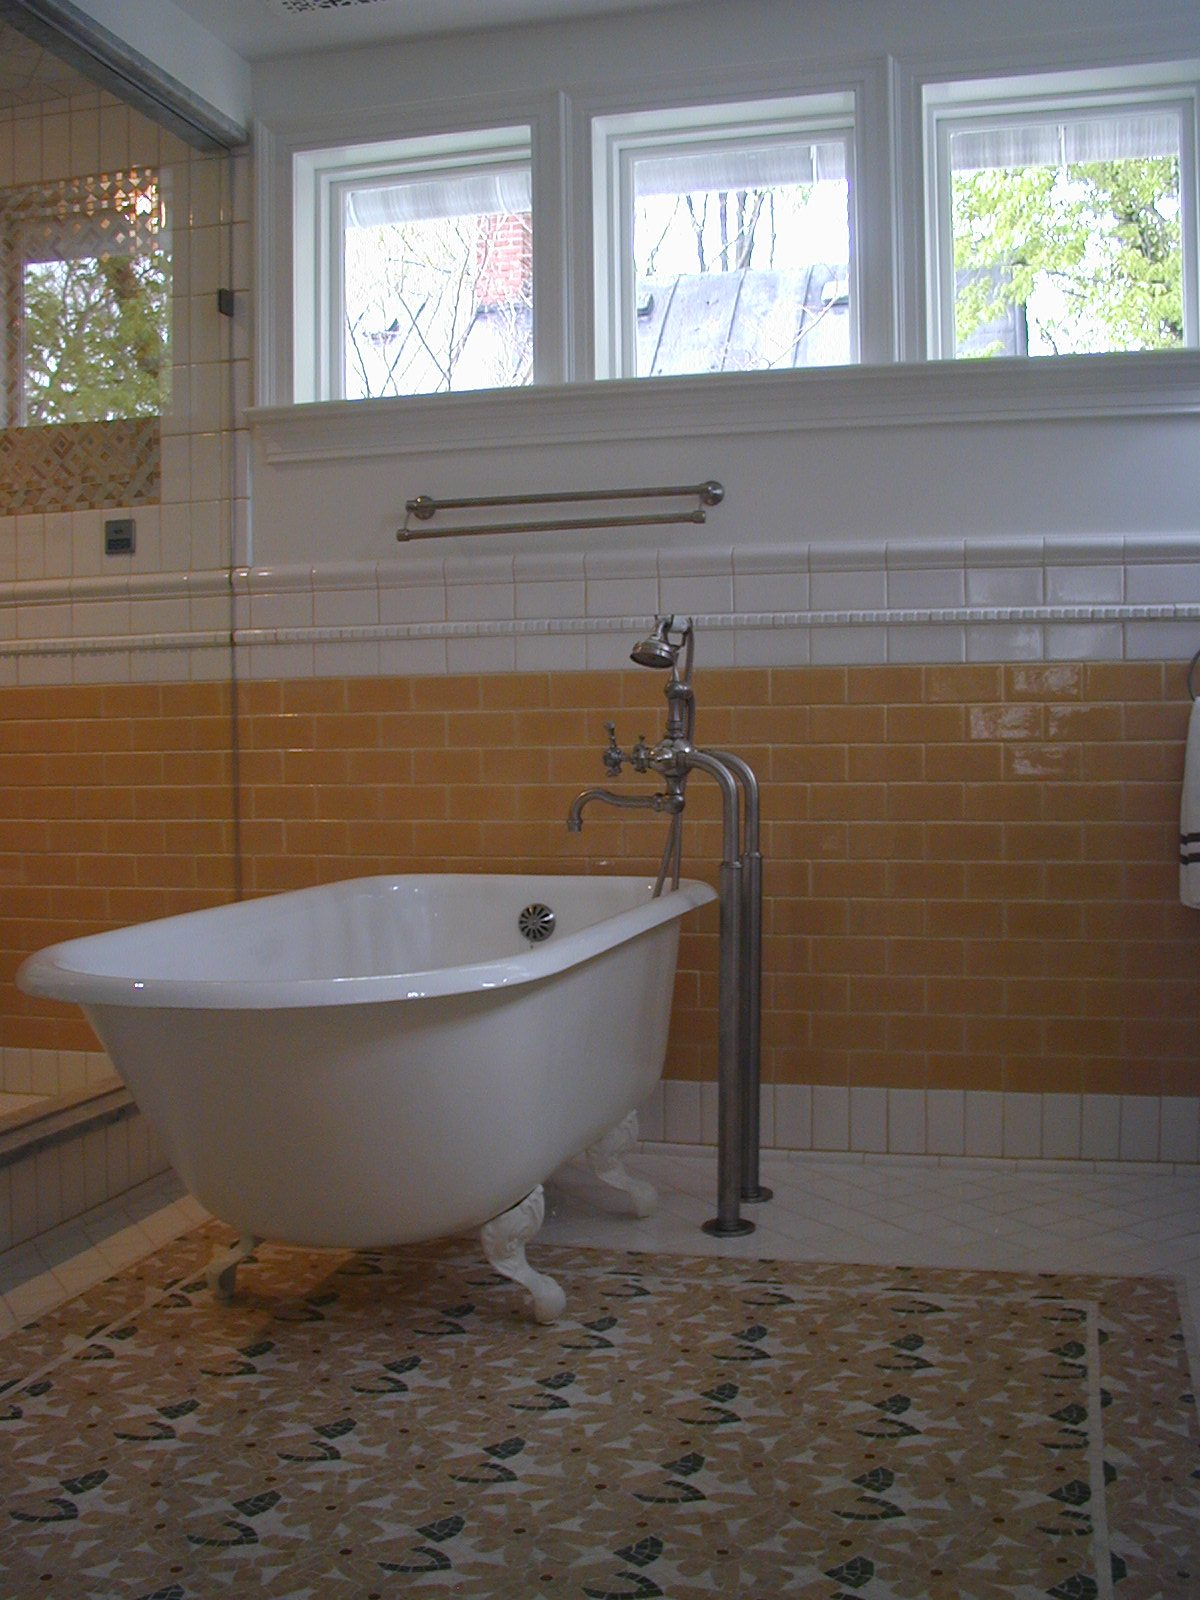 bathroom renovation, custom tile, yellow tile, flower tile, mosaic tile, colorful tile, custom windows, window repair, custom vanity, custom cabinetry, stone countertops, clawfoot bathtub, old fashioned bathtub, vintage bathtub, romantic bathroom, victorian bathtub,